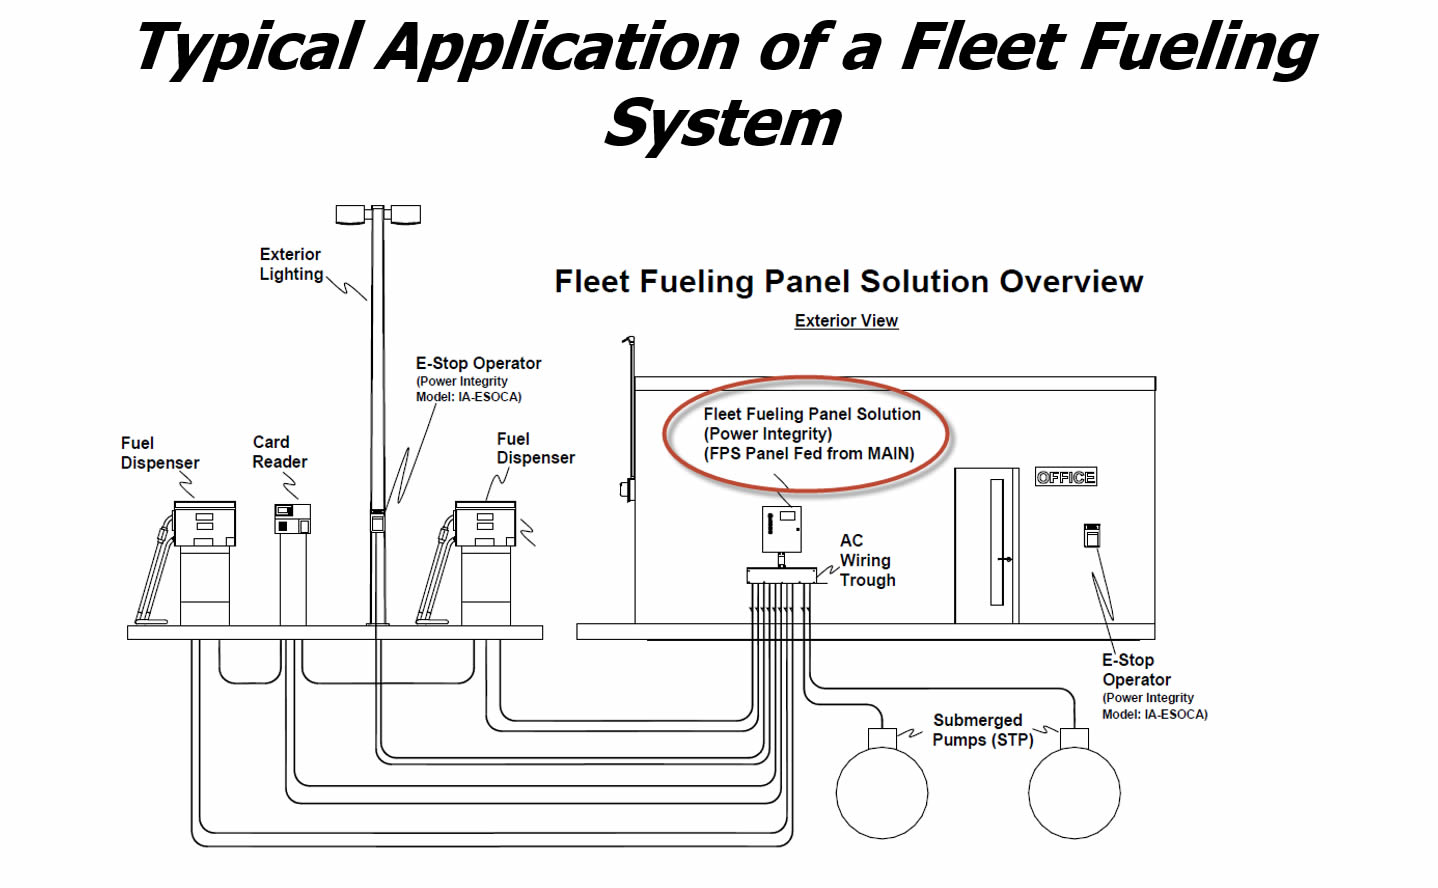 Power Integrity Fleet Power System Typical Application